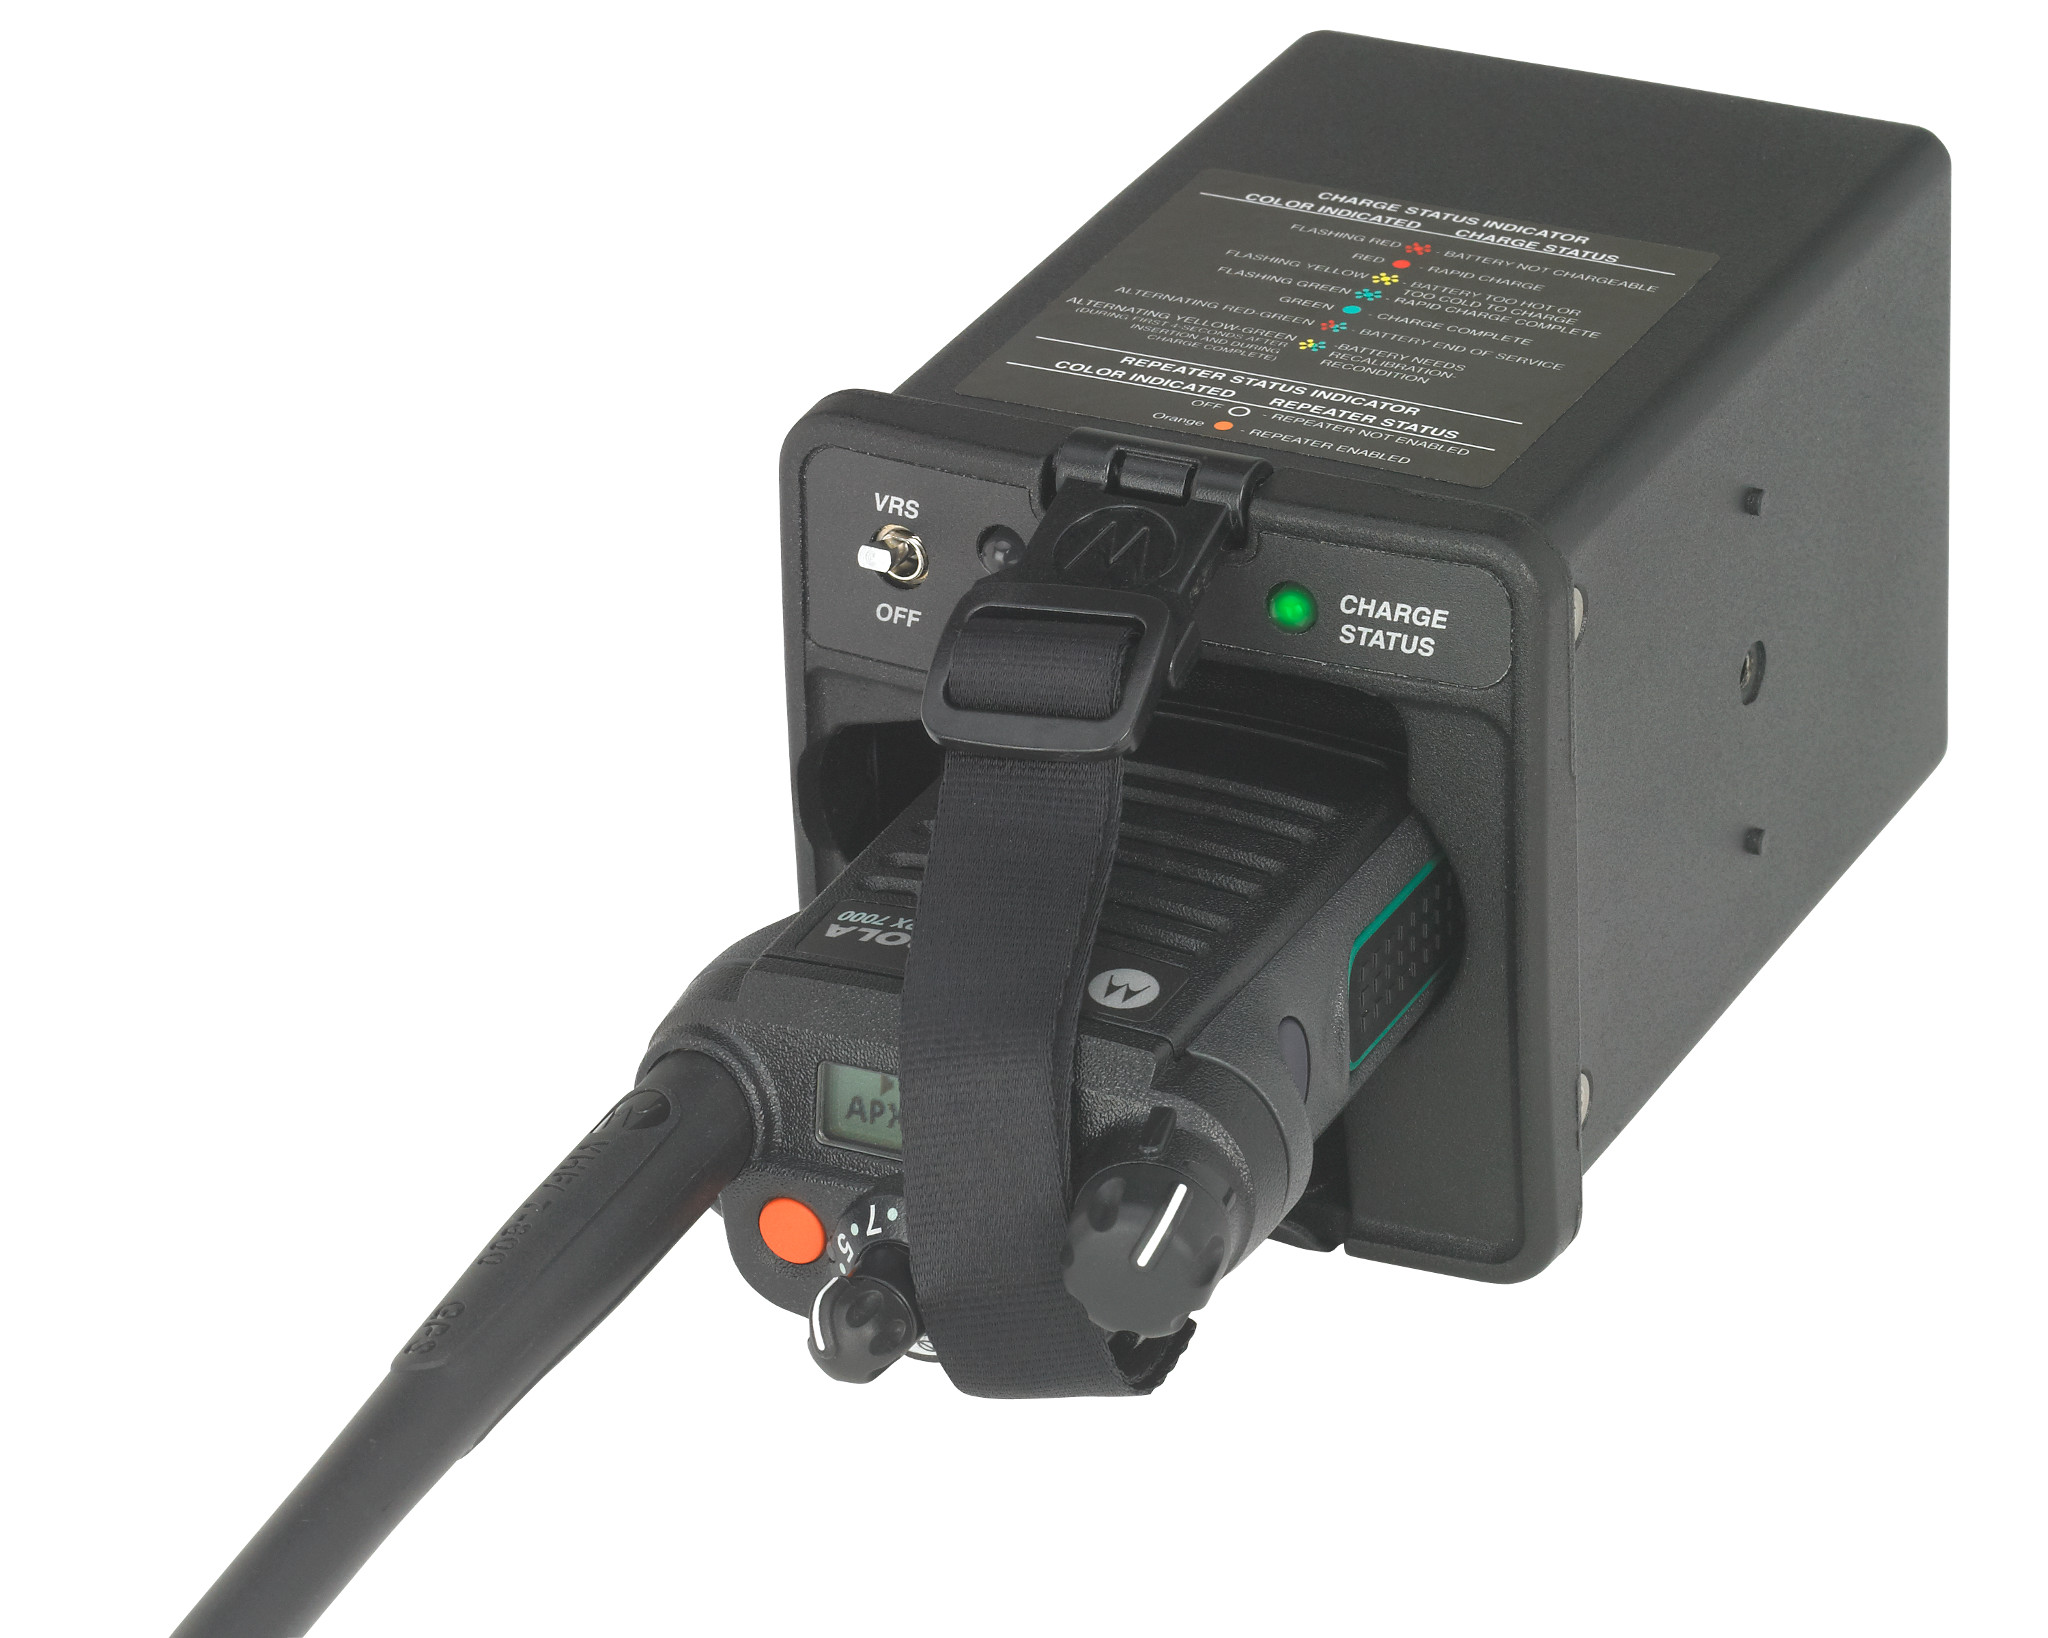 Image of IMPRES Vehicular Charger NNTN7624